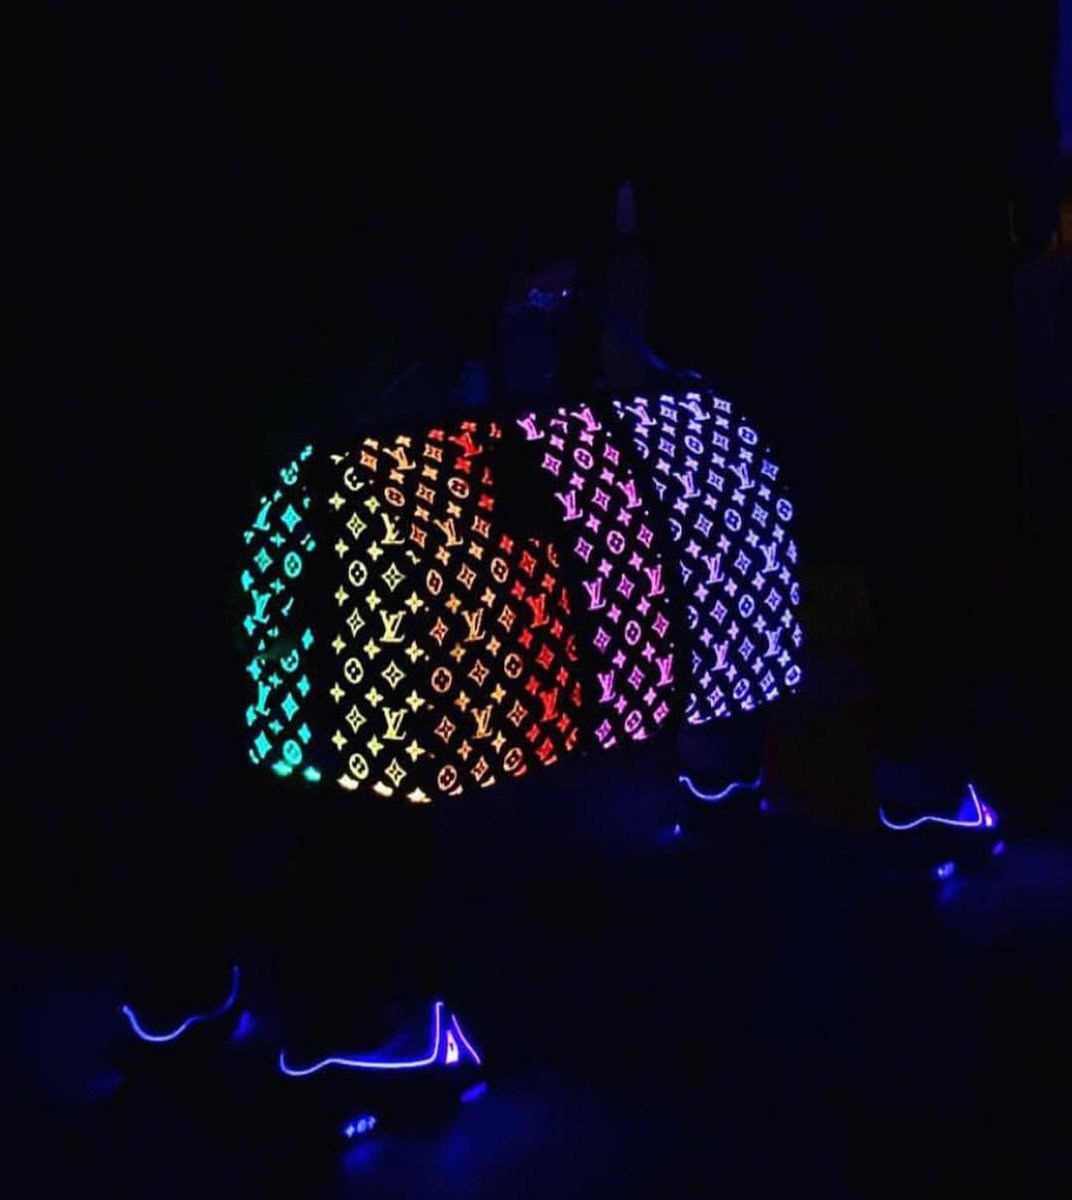 I can't stop thinking about the #LouisVuitton fiber optics keepall bag 🌈💡It lights up and changes colors 😭💯